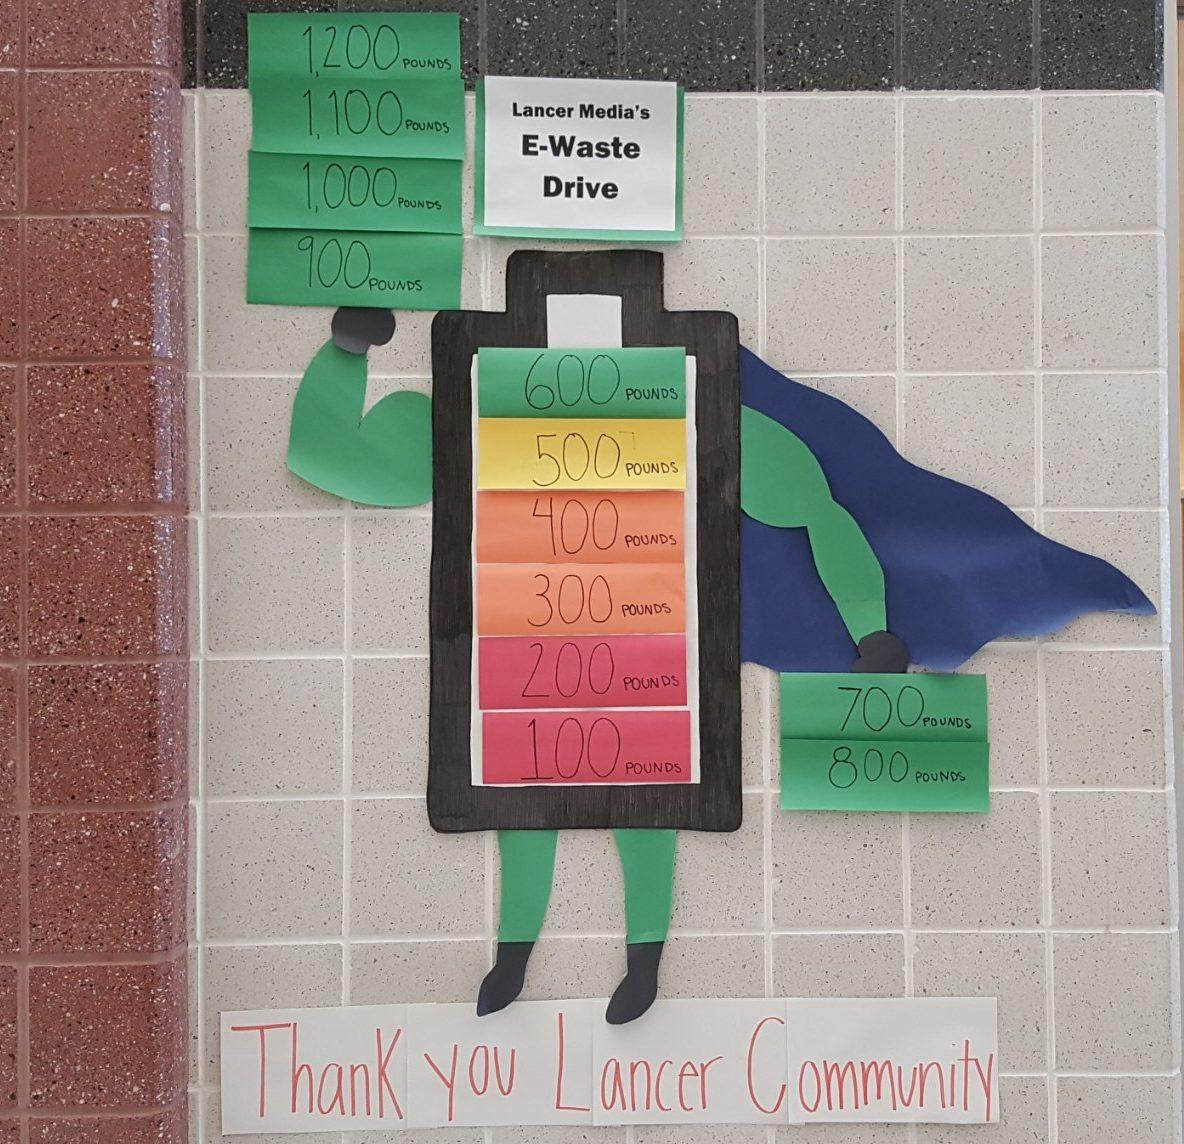 Thank you, Lancer Community for the successful E-Waste collection.